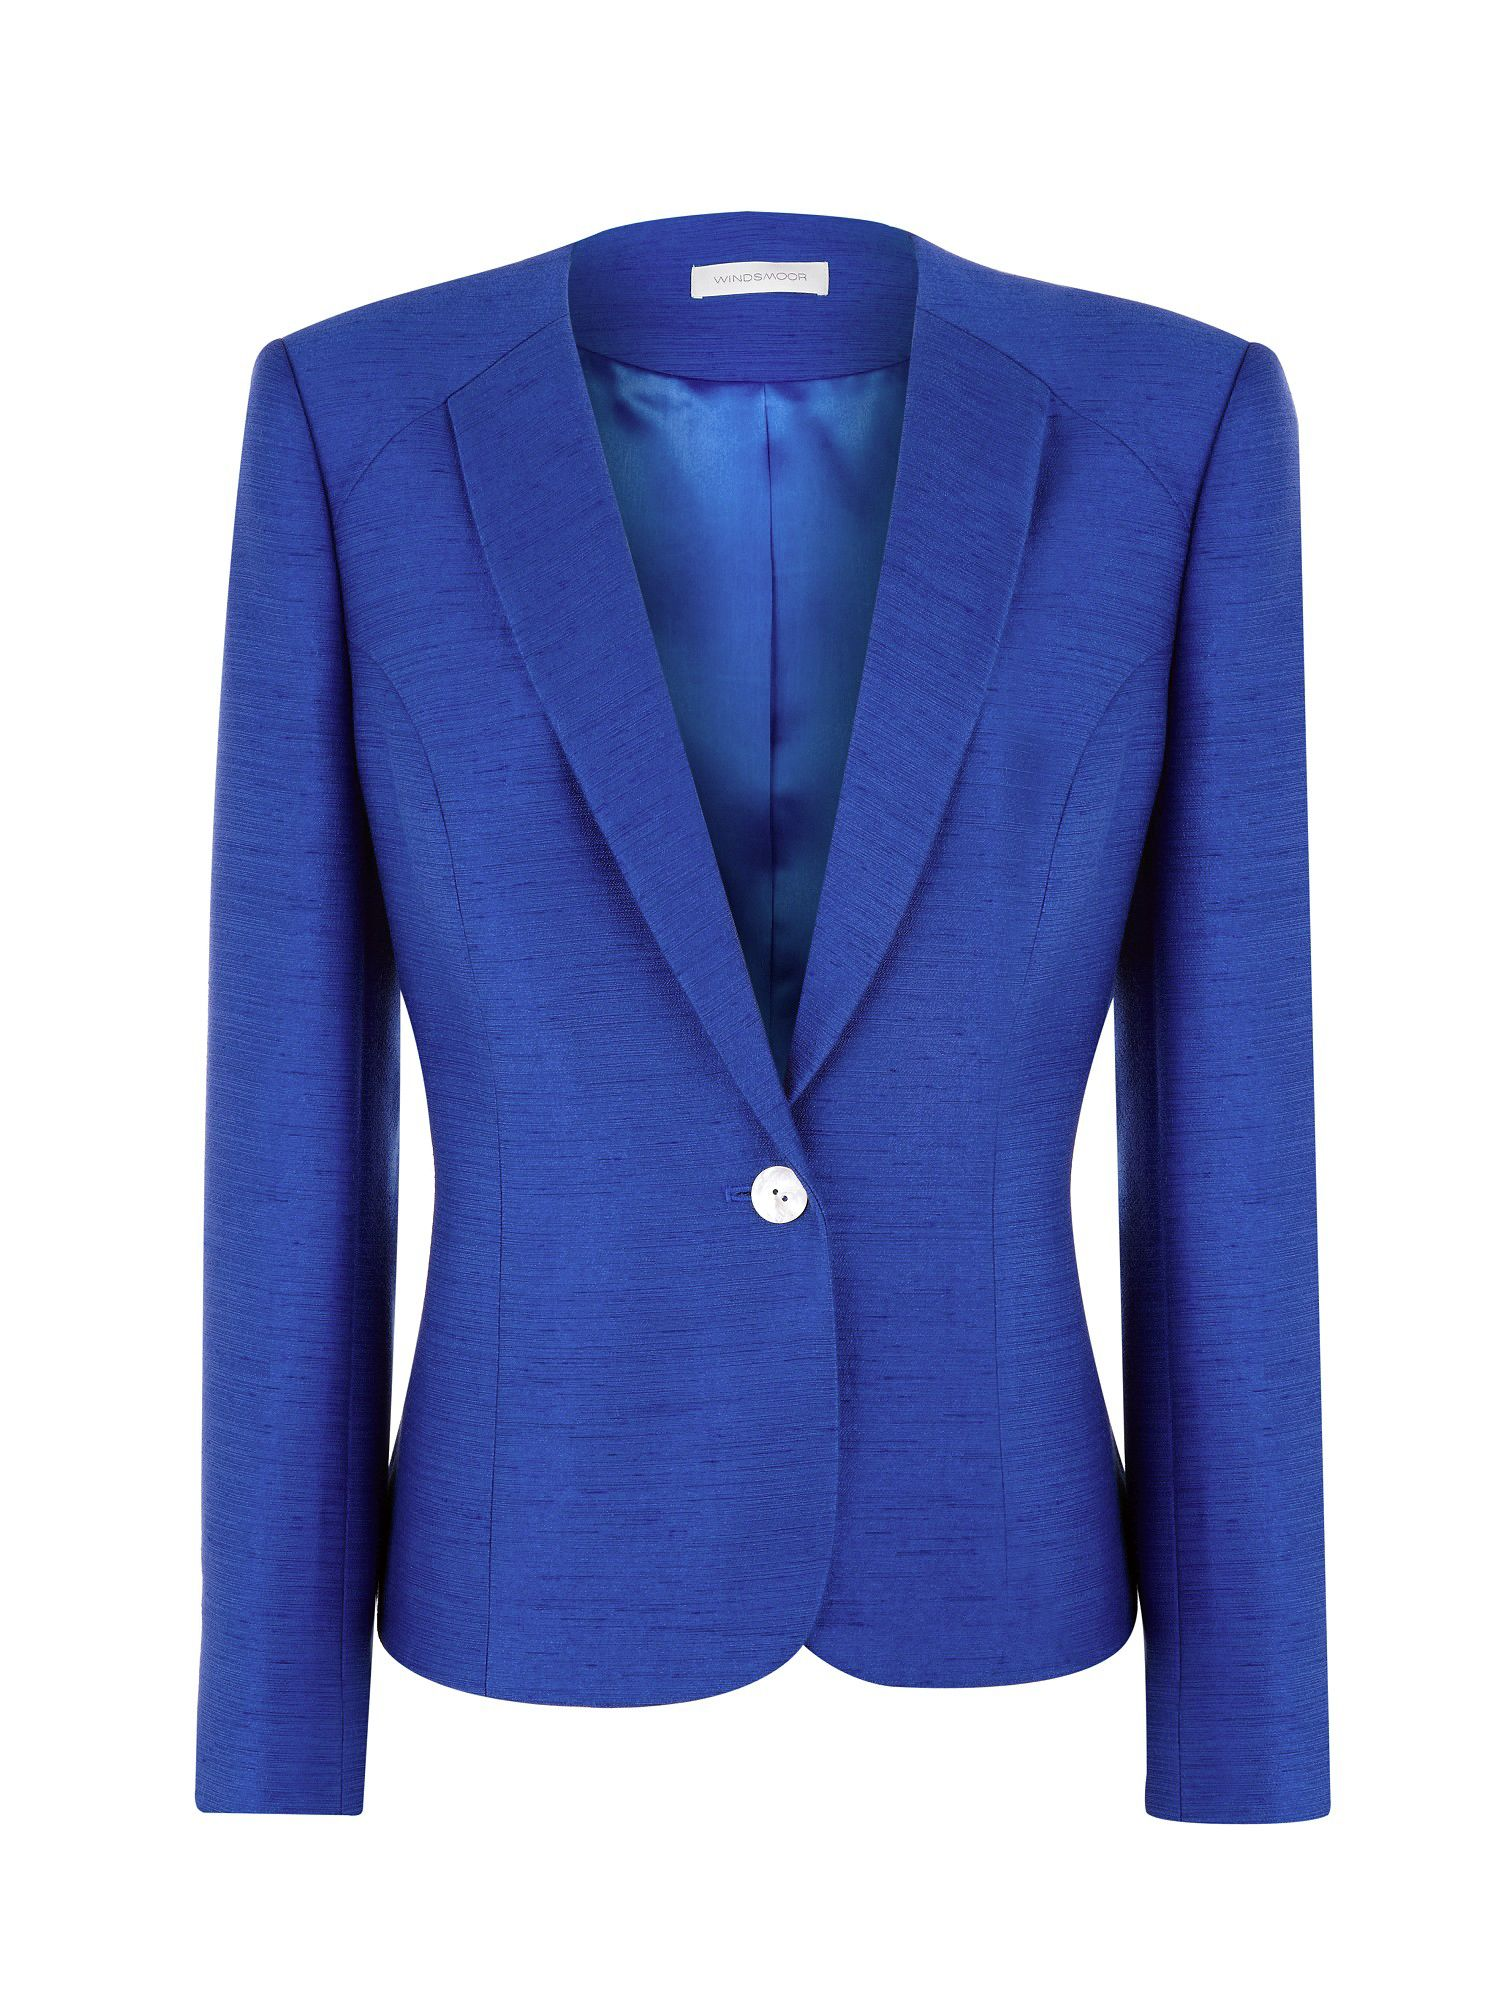 Pacific blue occasion jacket